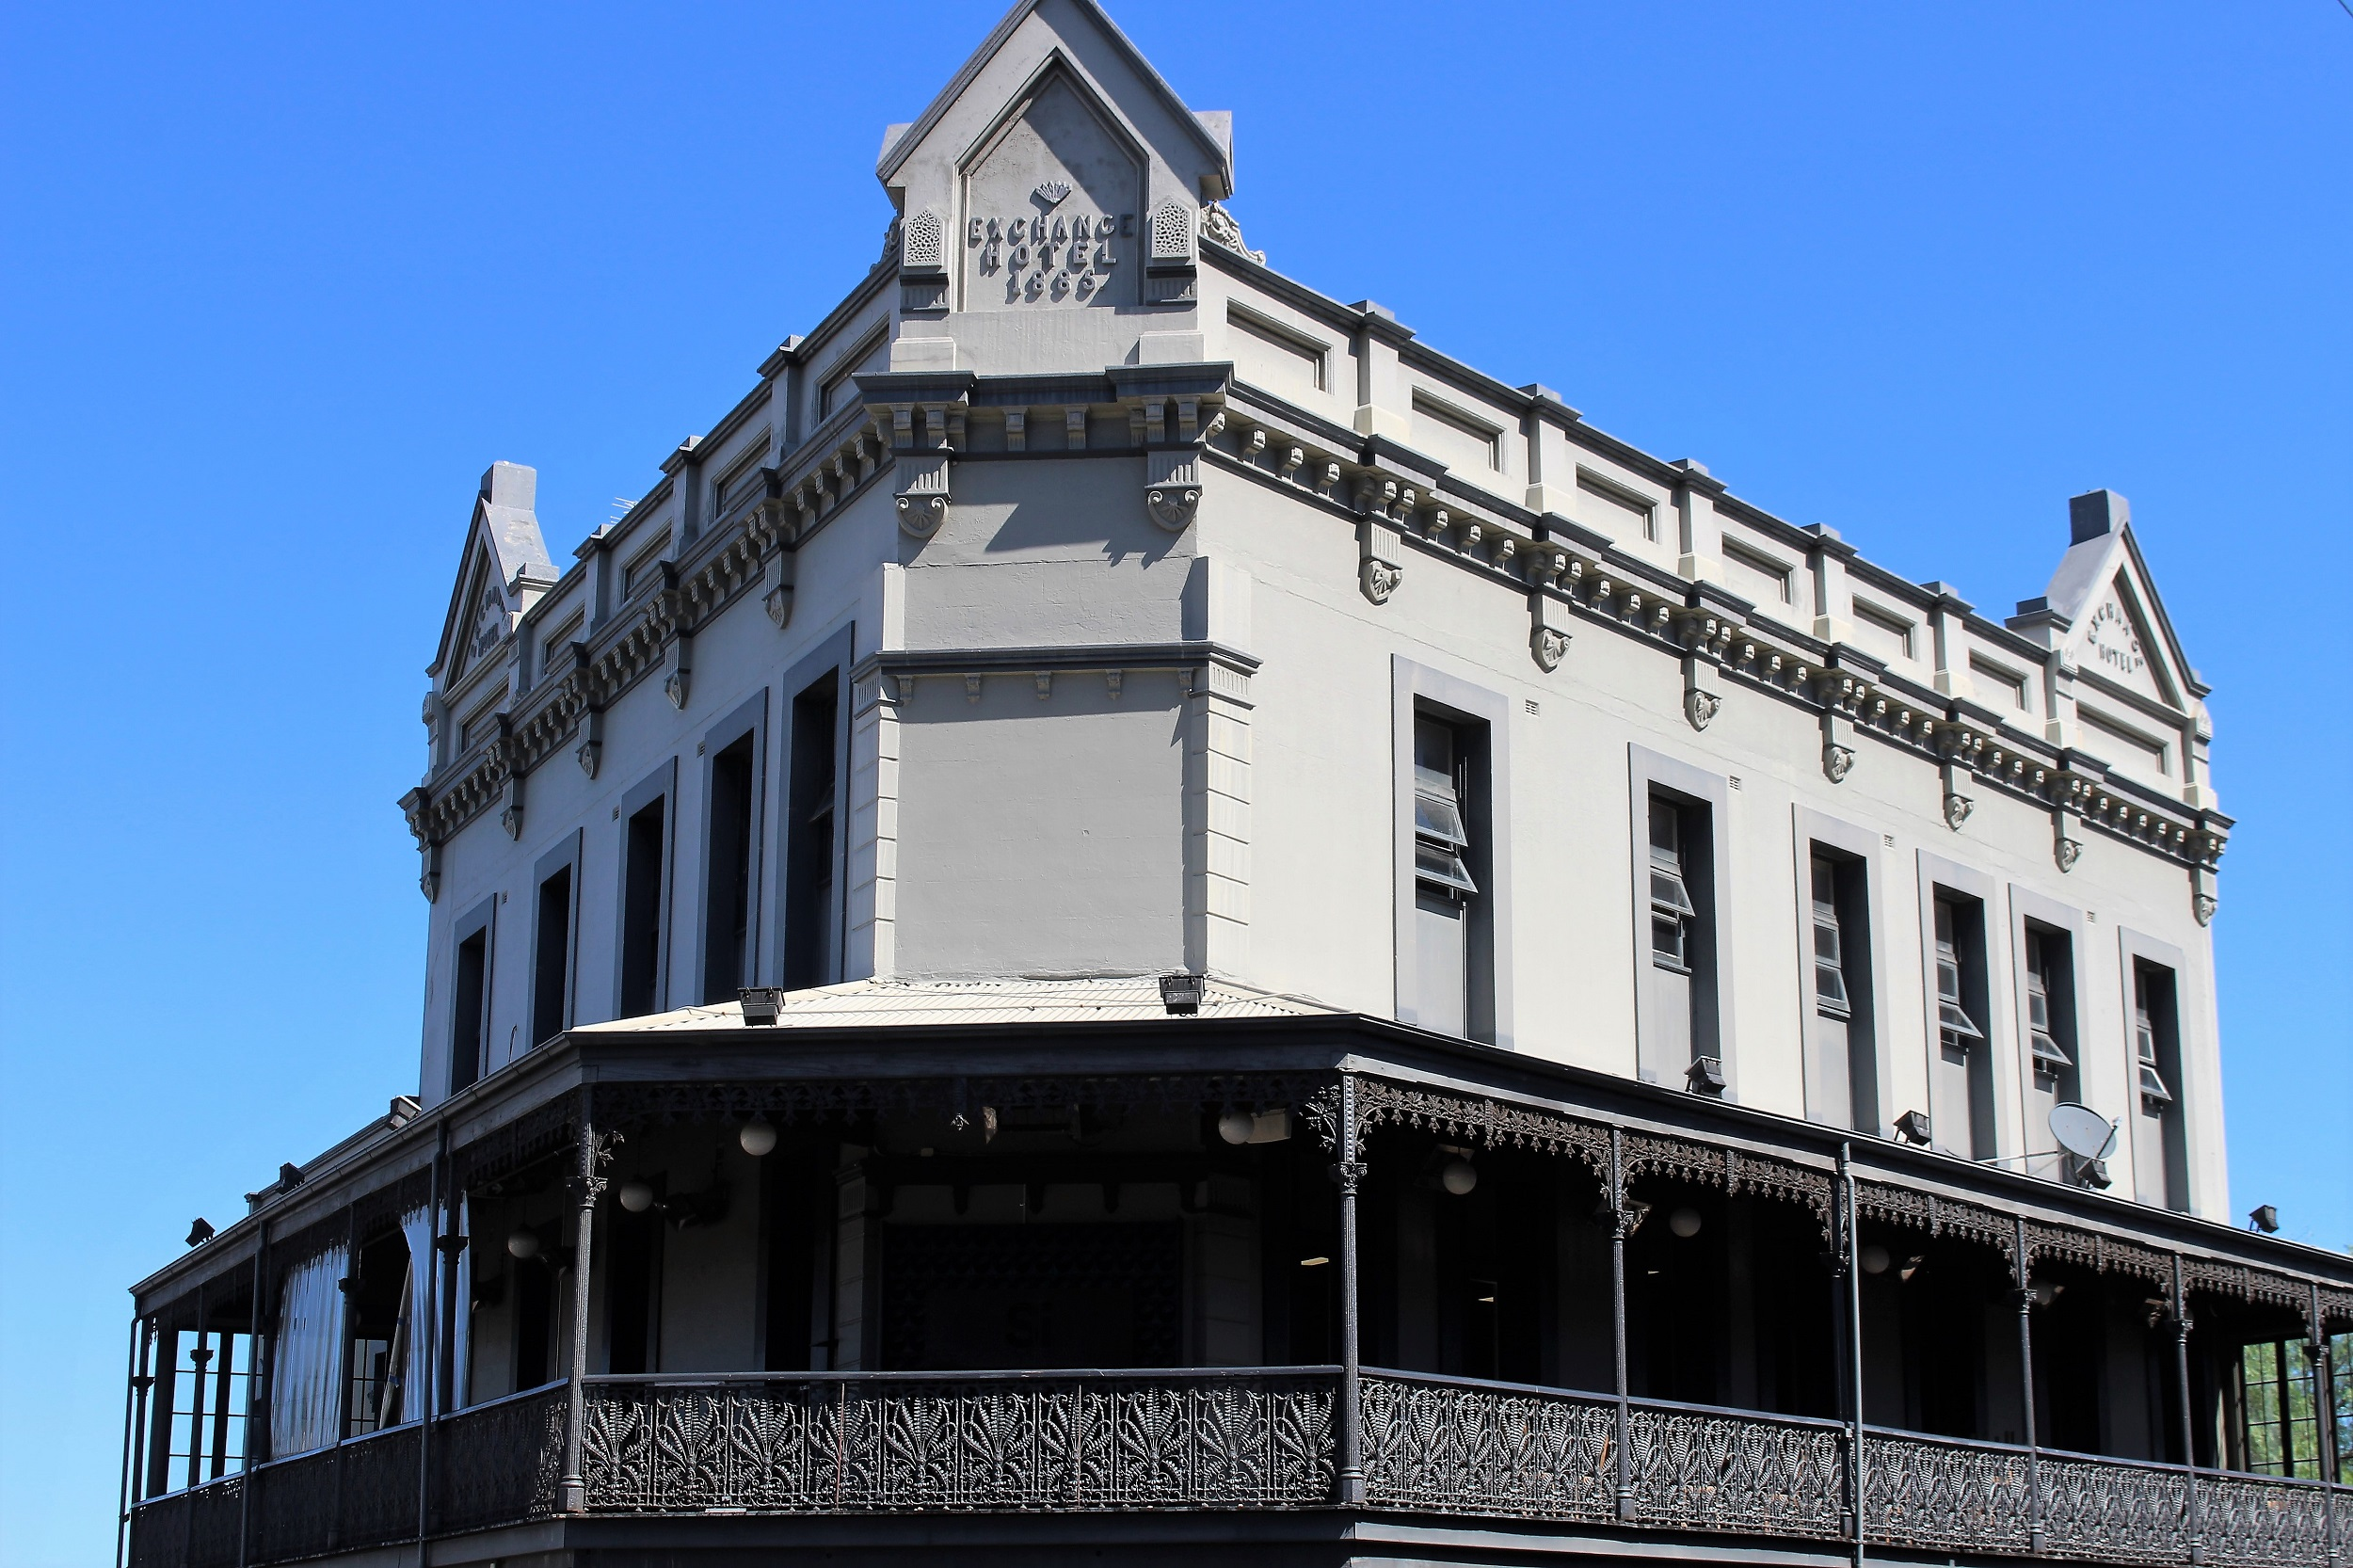 The Exchange Hotel is part of the fabric of Balmain.